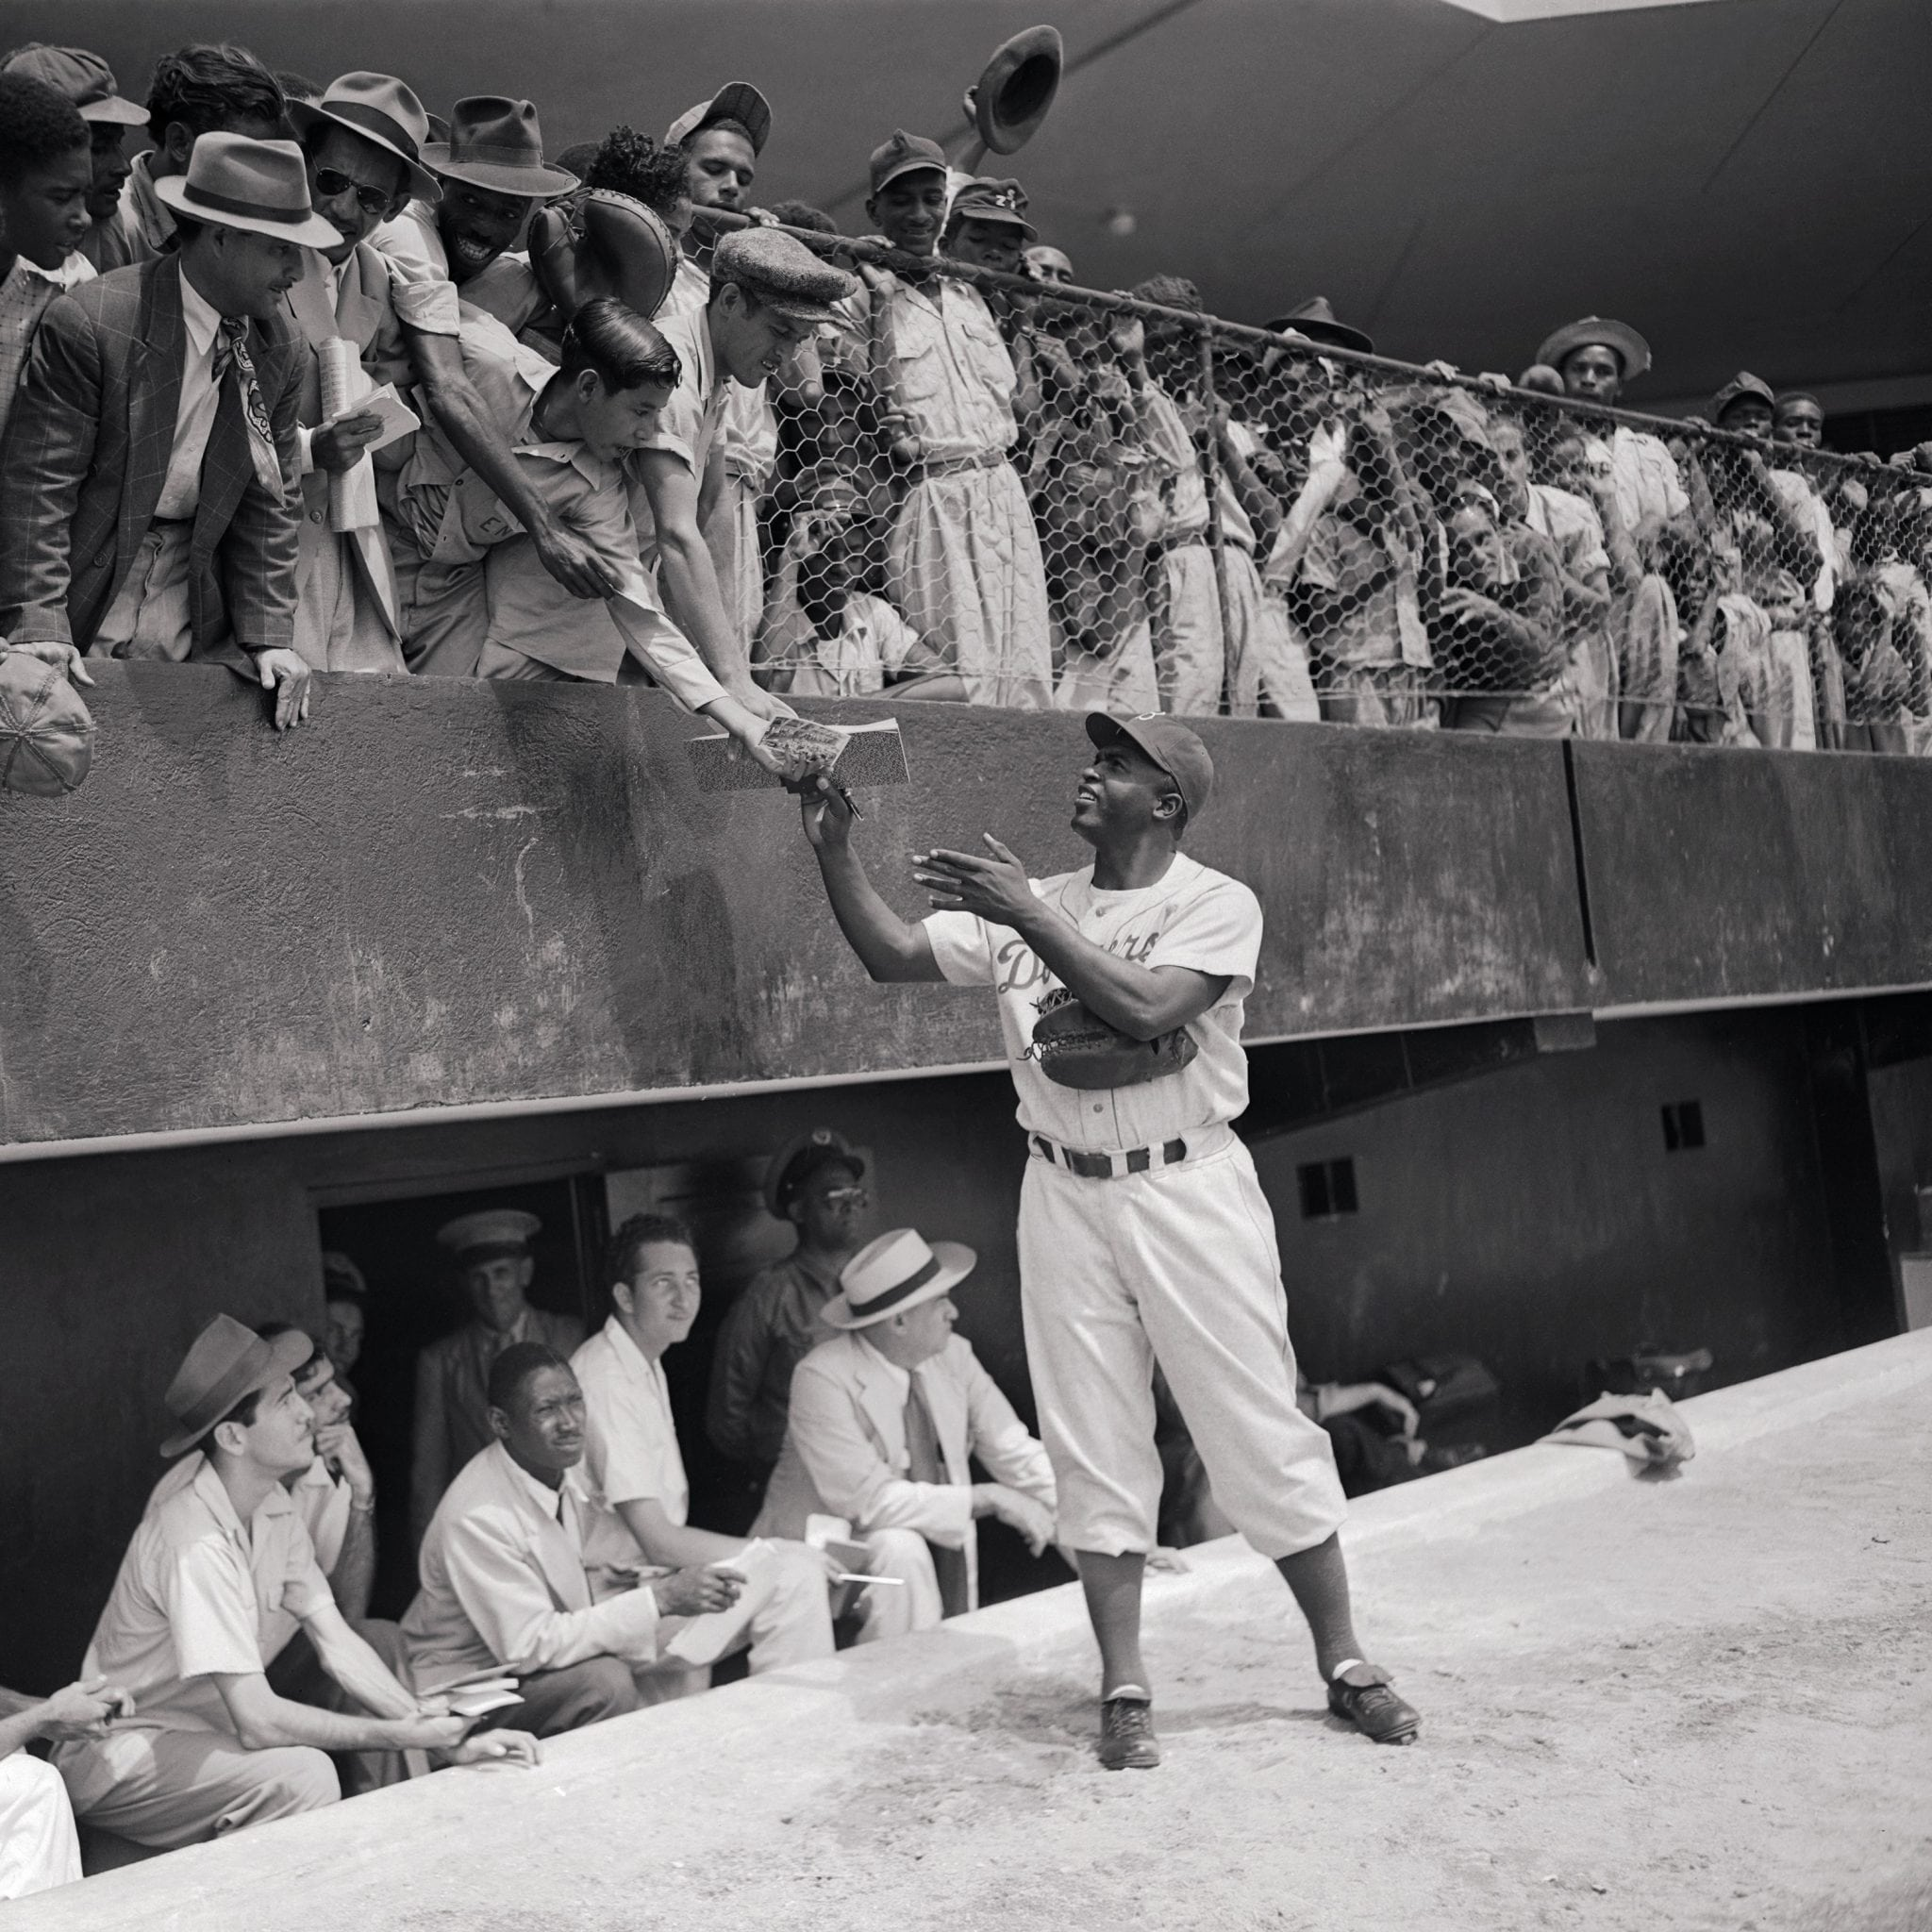 06 Mar 1948, Santo Domingo, Dominican Republic --- Original caption: On his first day of spring training with the Brooklyn Dodgers here, Jackie Robinson, Negro first baseman, proved a prime favorite with San Dominicans. He is shown here giving his autograph to some of the natives who watched the Dodgers workout at the Trujillo High School grounds. --- Image by © Bettmann/CORBIS